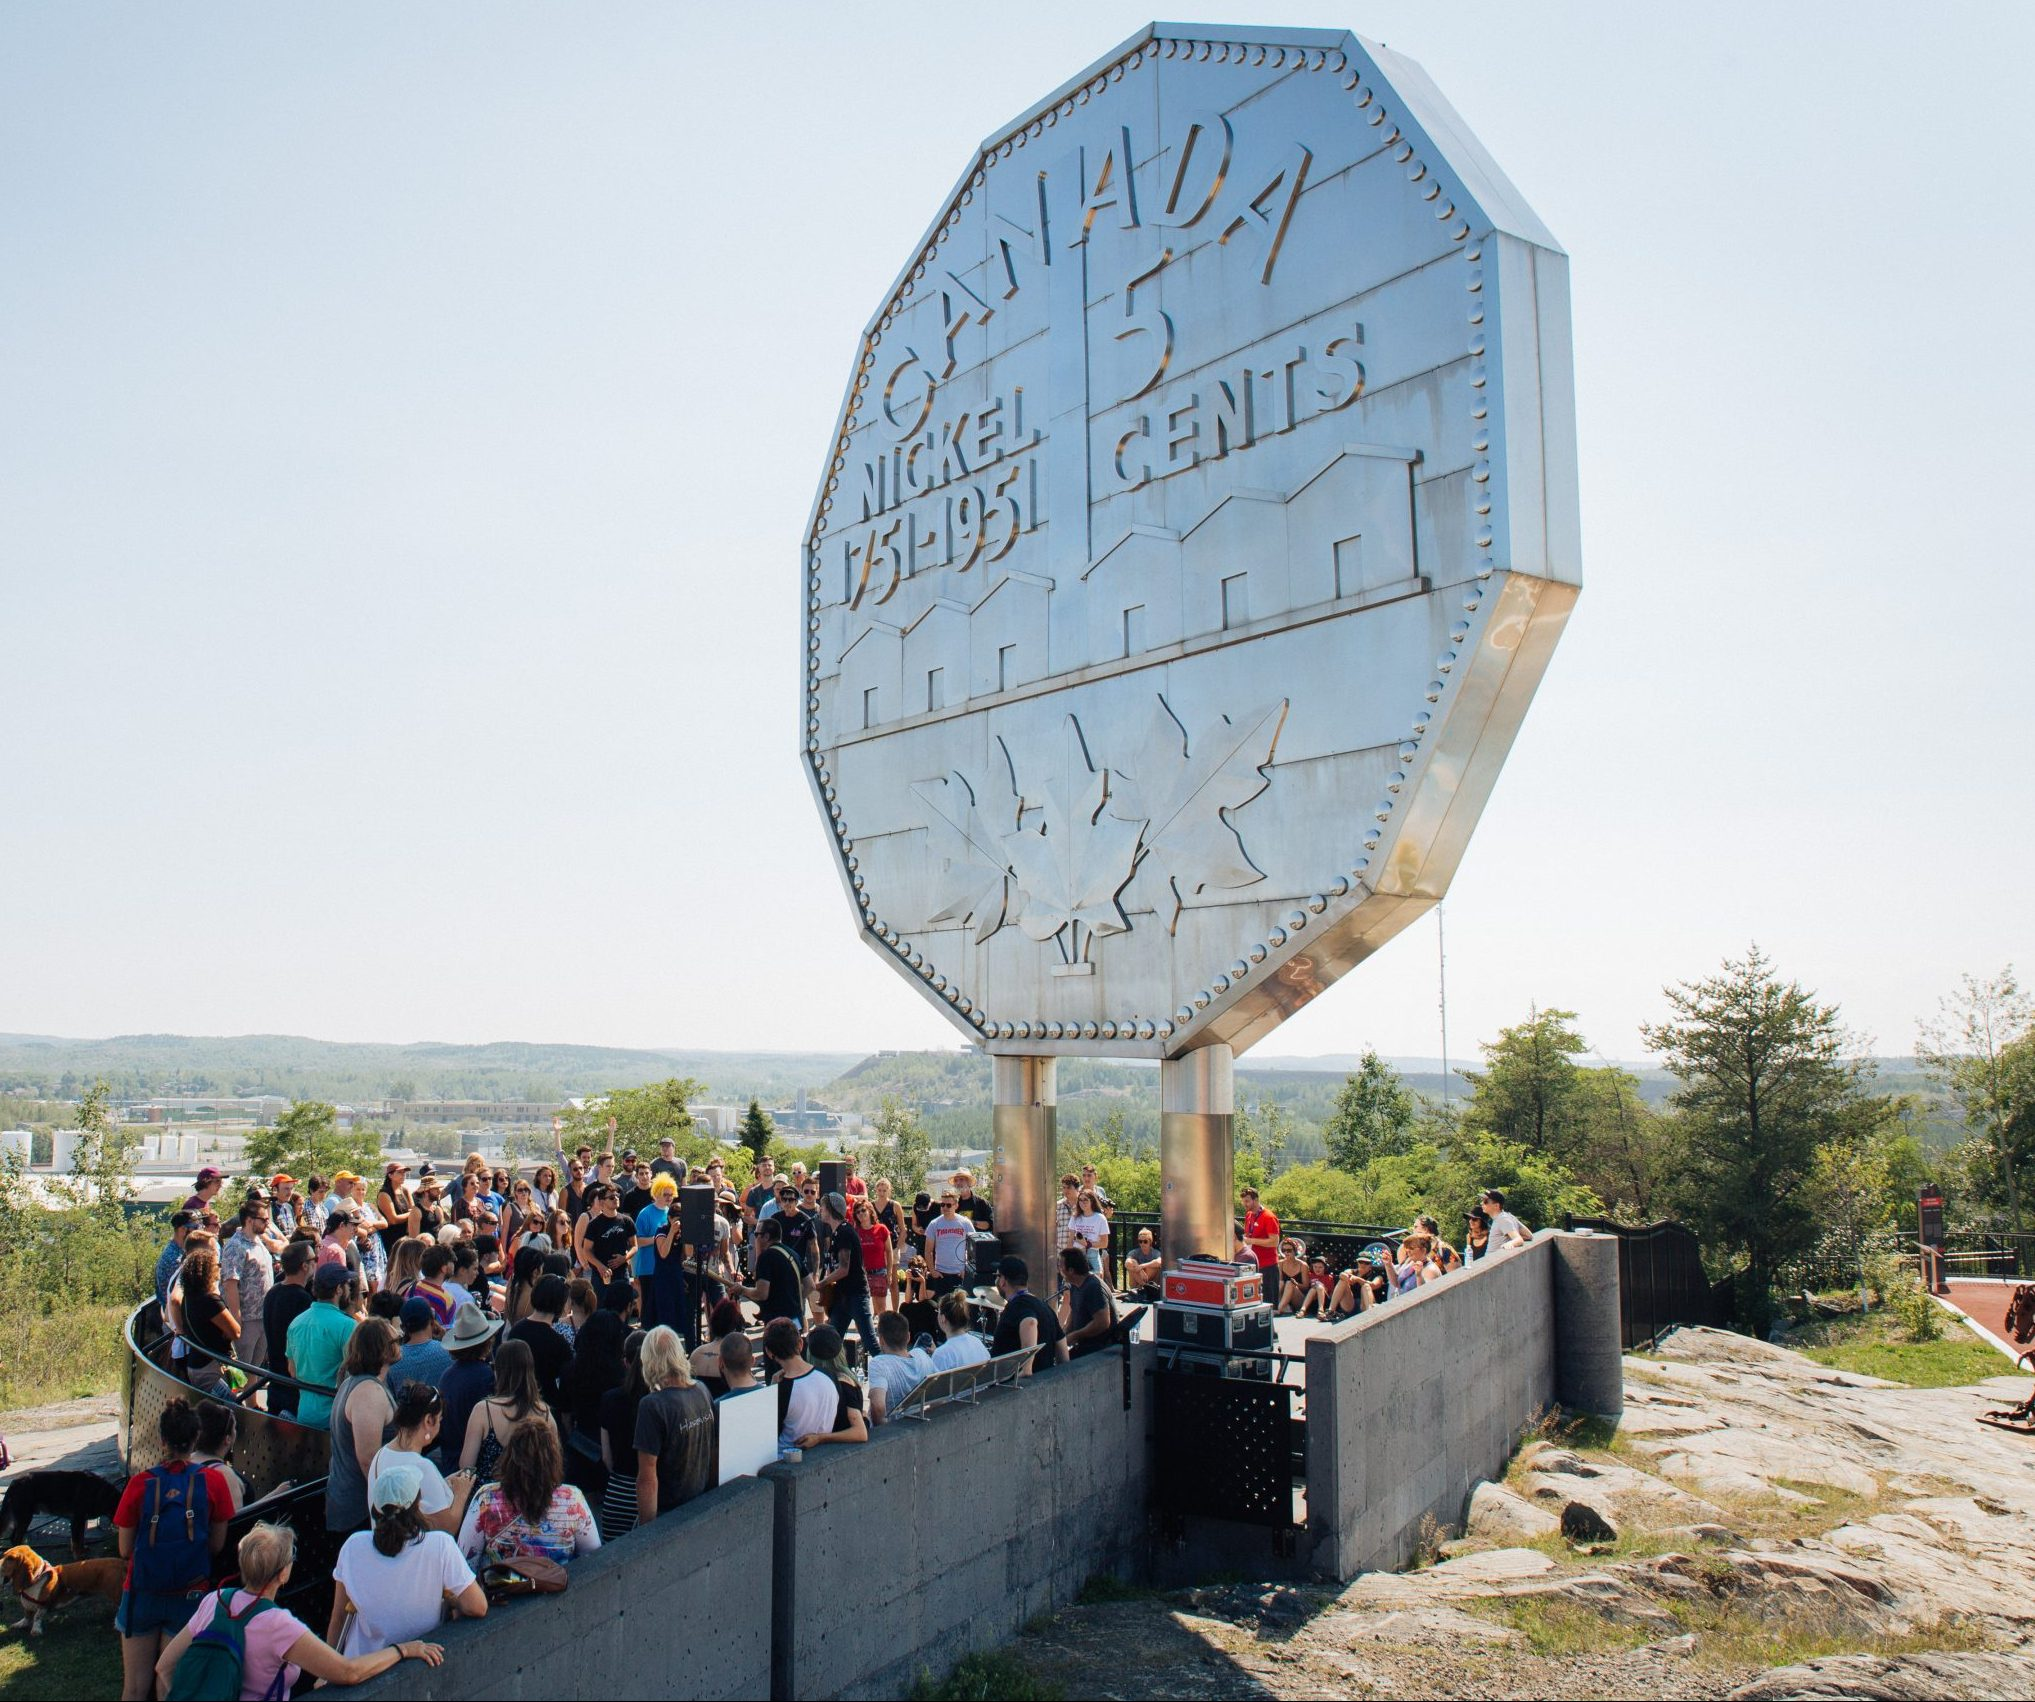 Pop-up concert under the Big Nickel during Up Here festival. Photo by Vanessa Tignanelli.